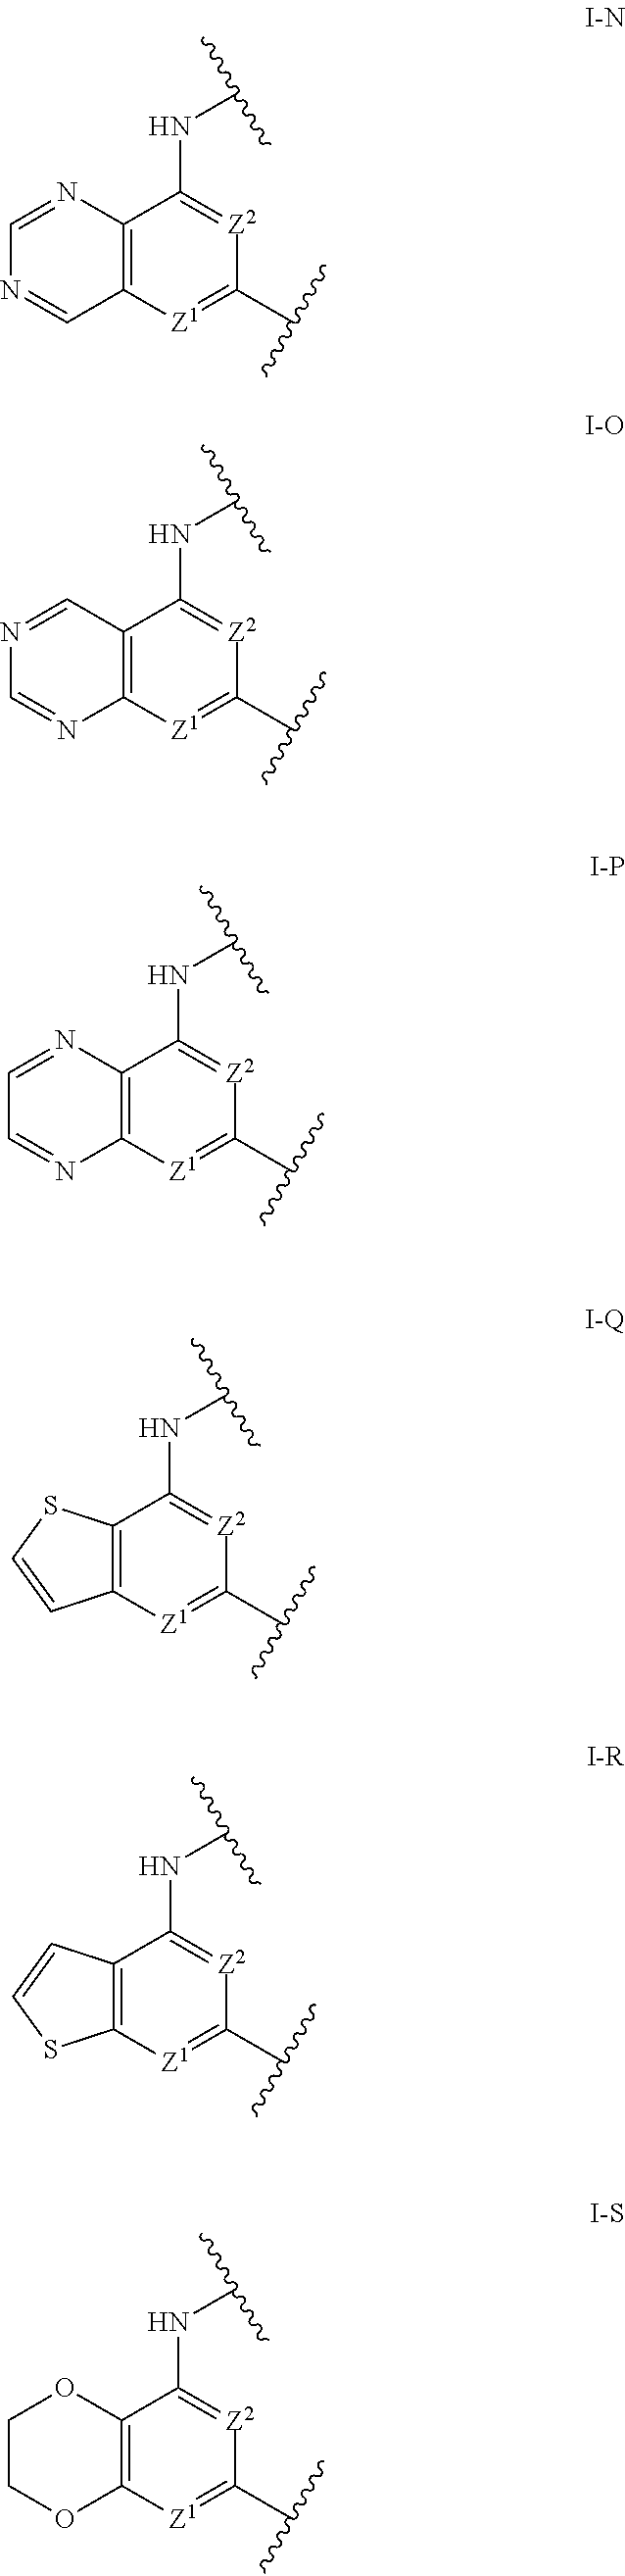 Us8633210b2 Triazole Compounds Useful As Protein Kinase Inhibitors Wiring Diagram Bolens 1476 Figure Us08633210 20140121 C00007